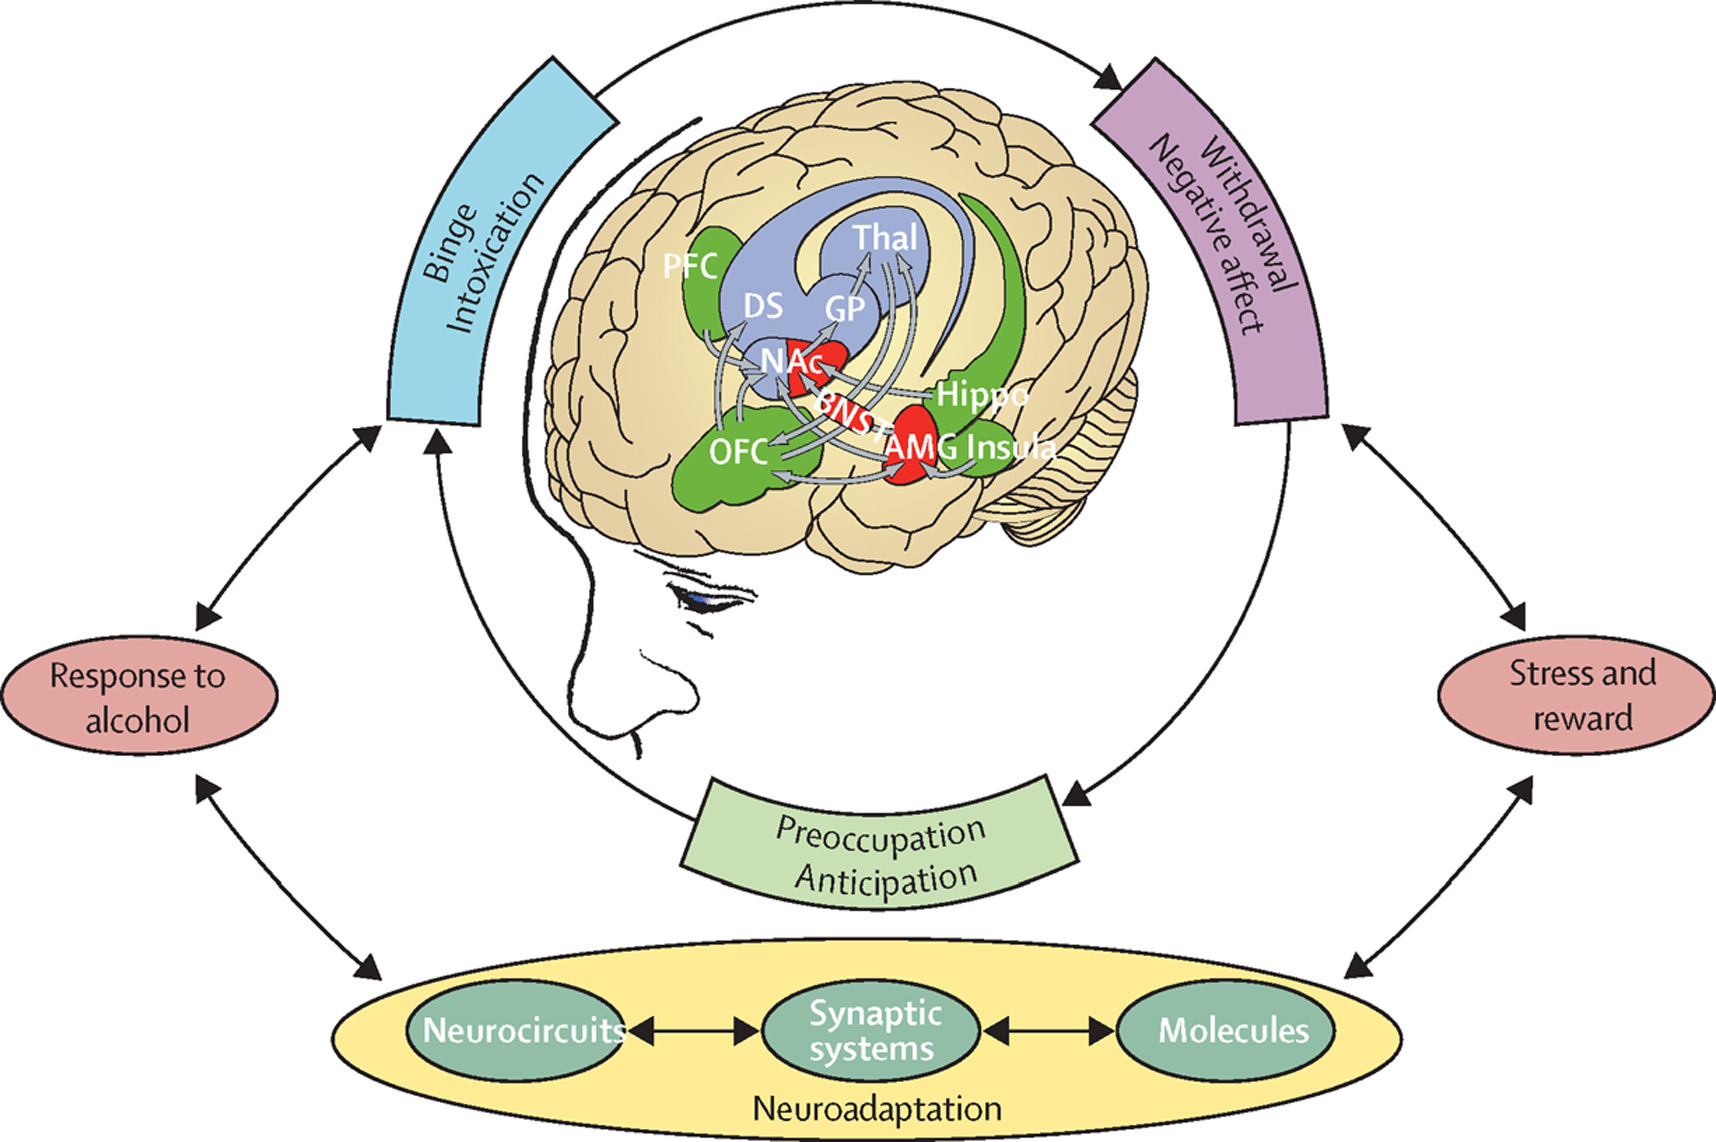 Brain Disease Model Of Addiction Why Is It So